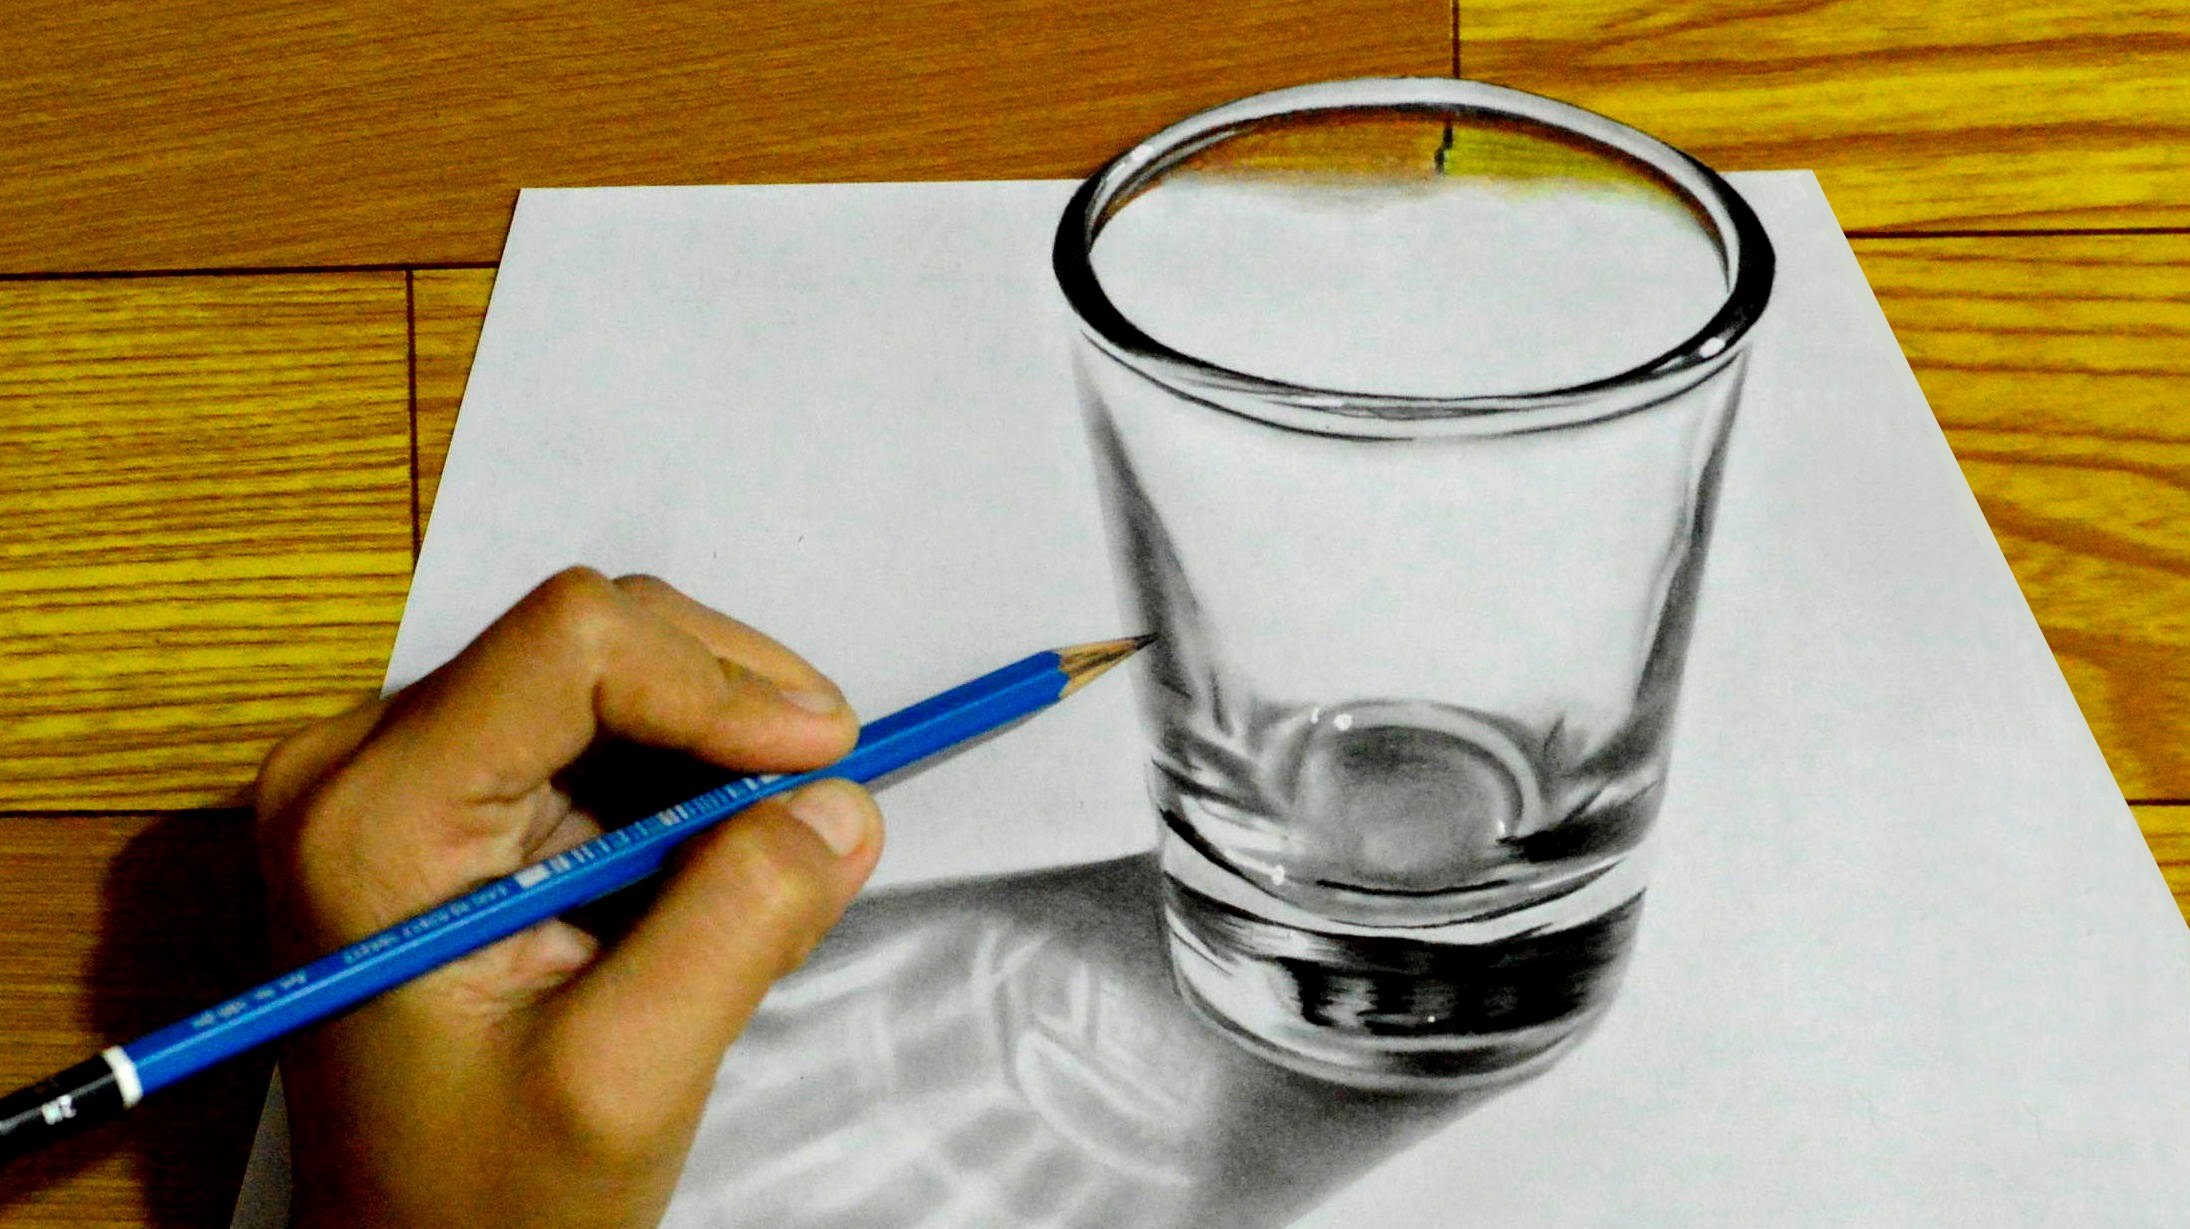 Drawn optical illusion realistic = Graphite 3D Optical 3D